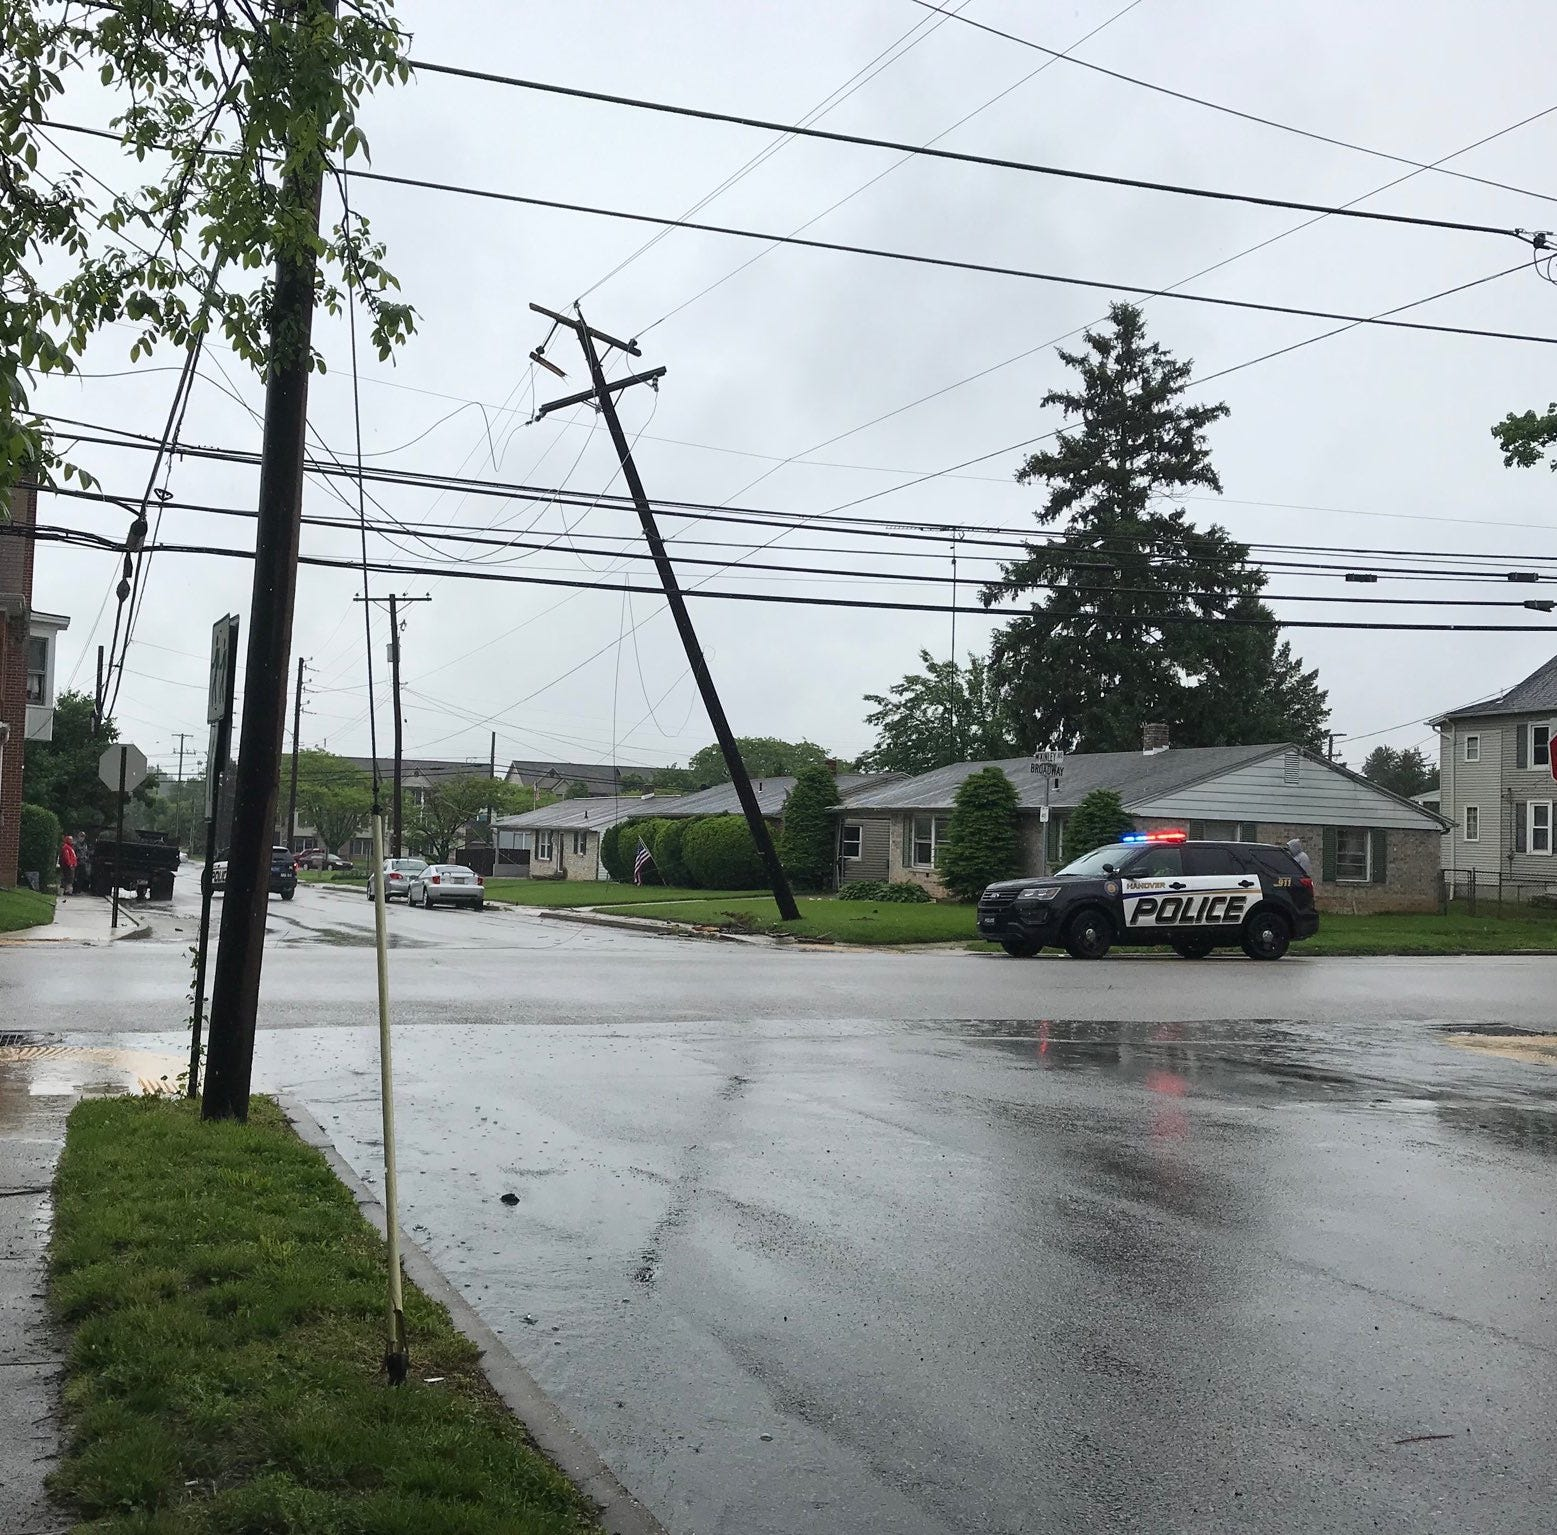 Crash into a utility poll causes power outages, Broadway to be closed up to 8 hours